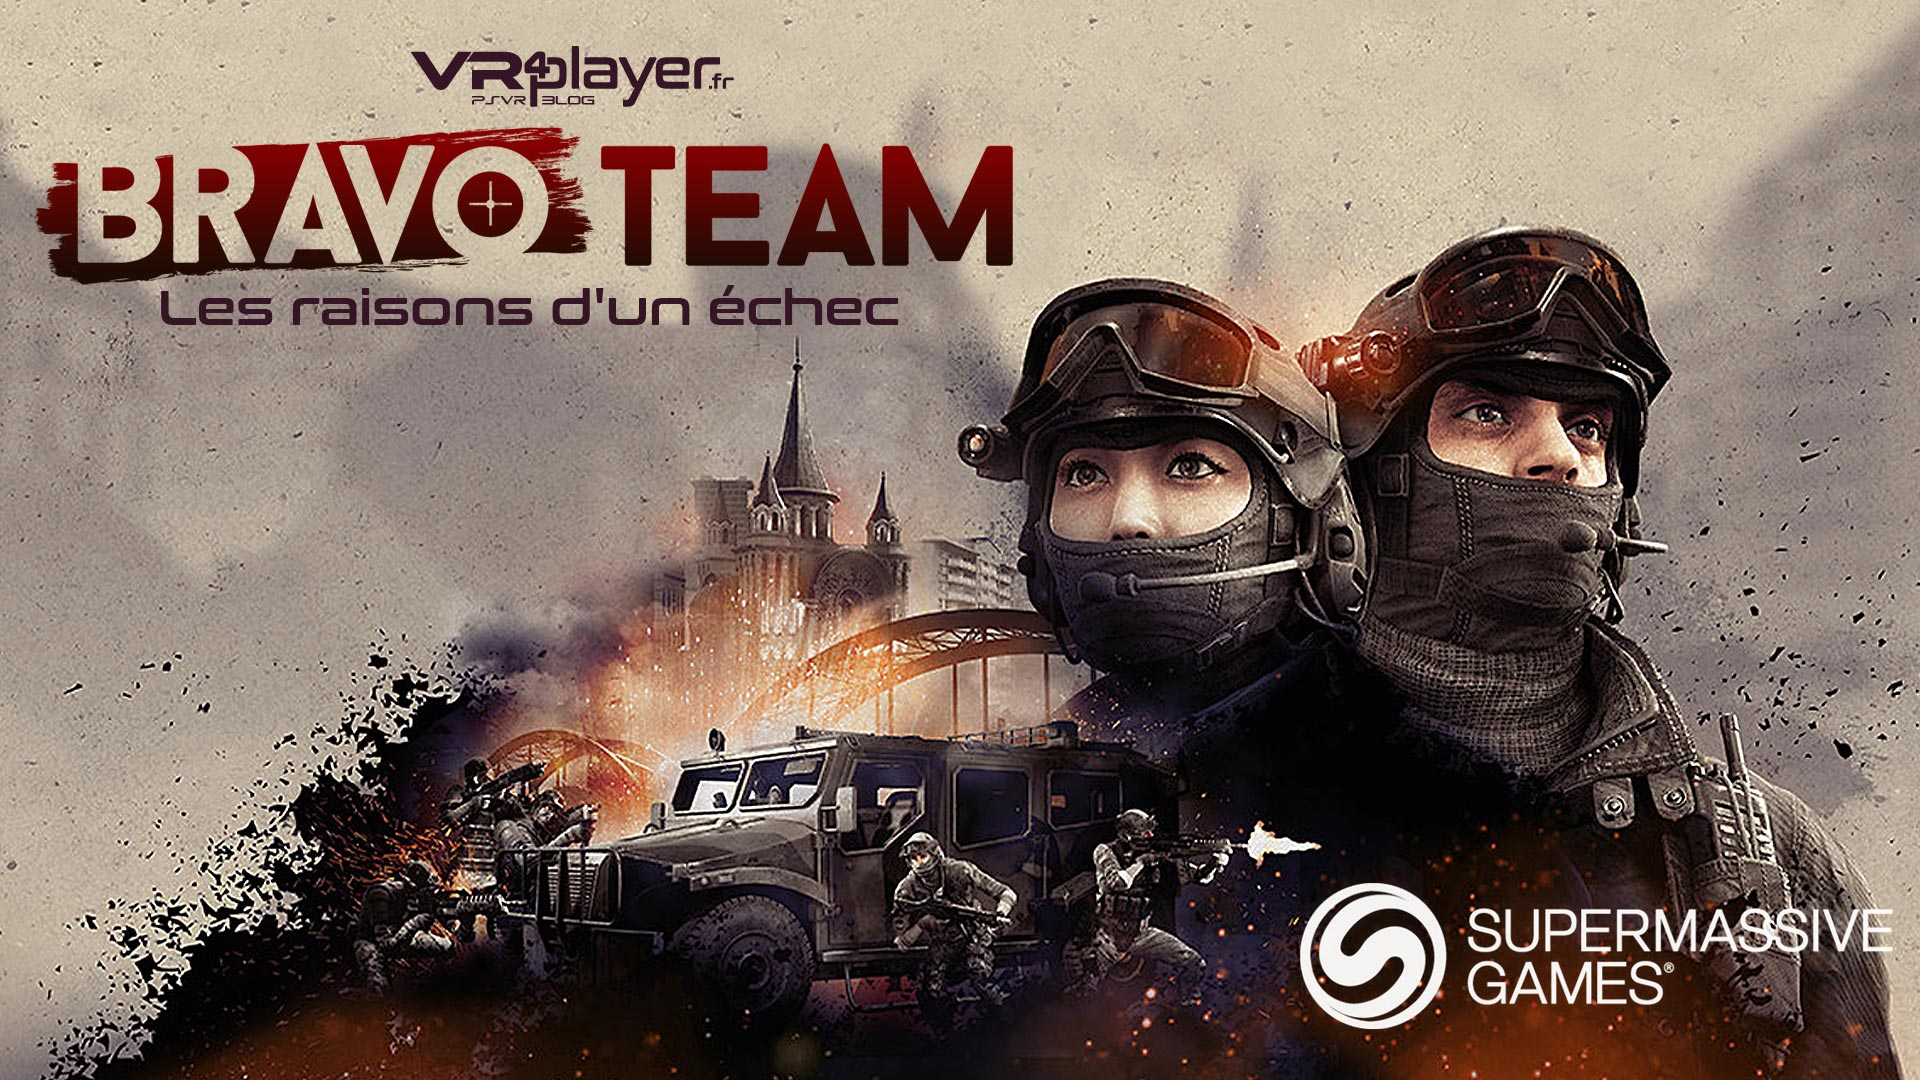 Bravo Team Raisons de l'echec VR4Player dossier